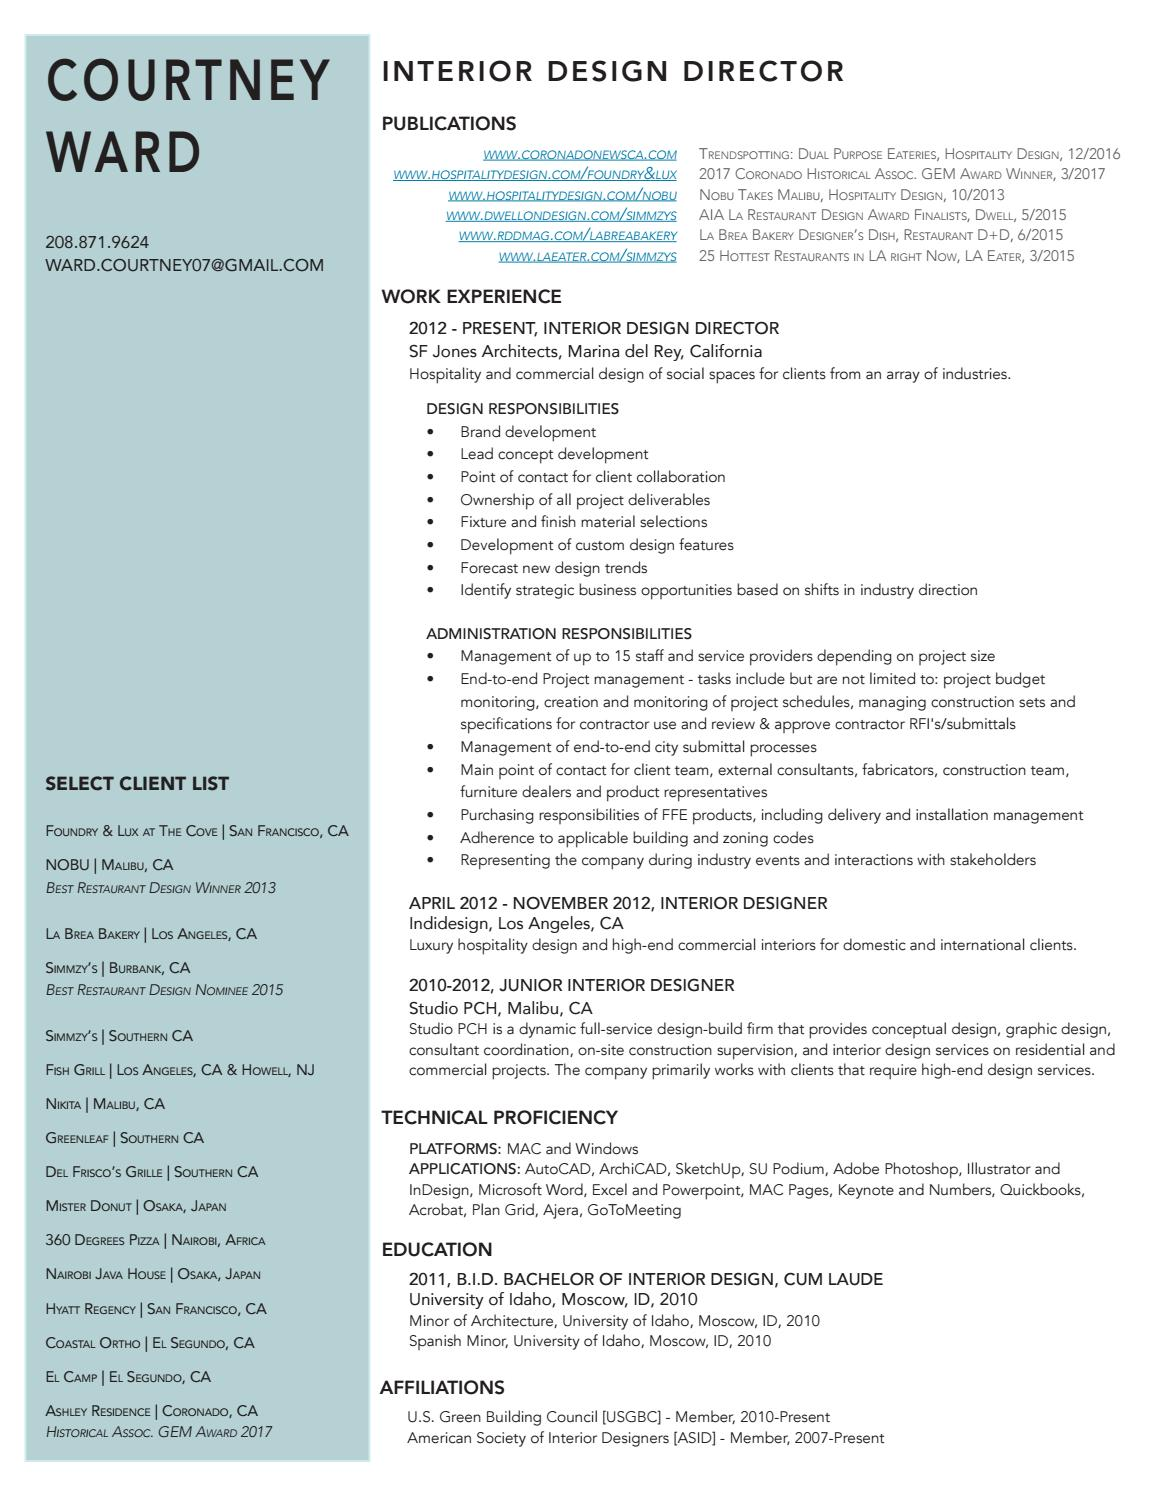 Courtney Ward Resume